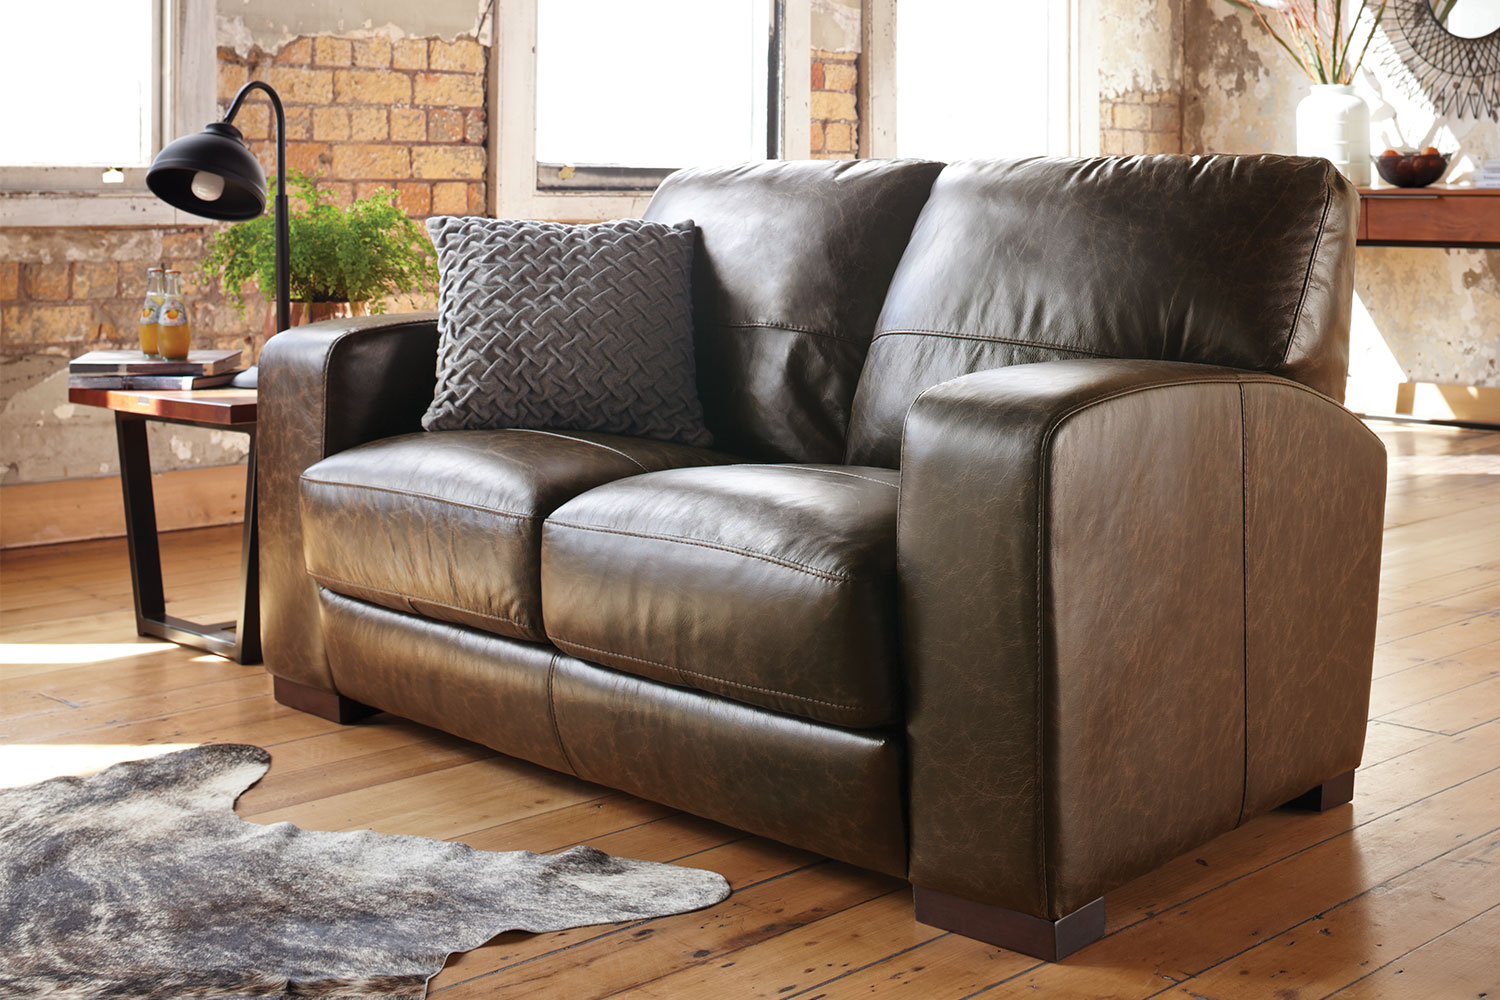 Leather Sofa New Zealand Caprizi 2 Seater Leather Sofa By Debonaire Furniture